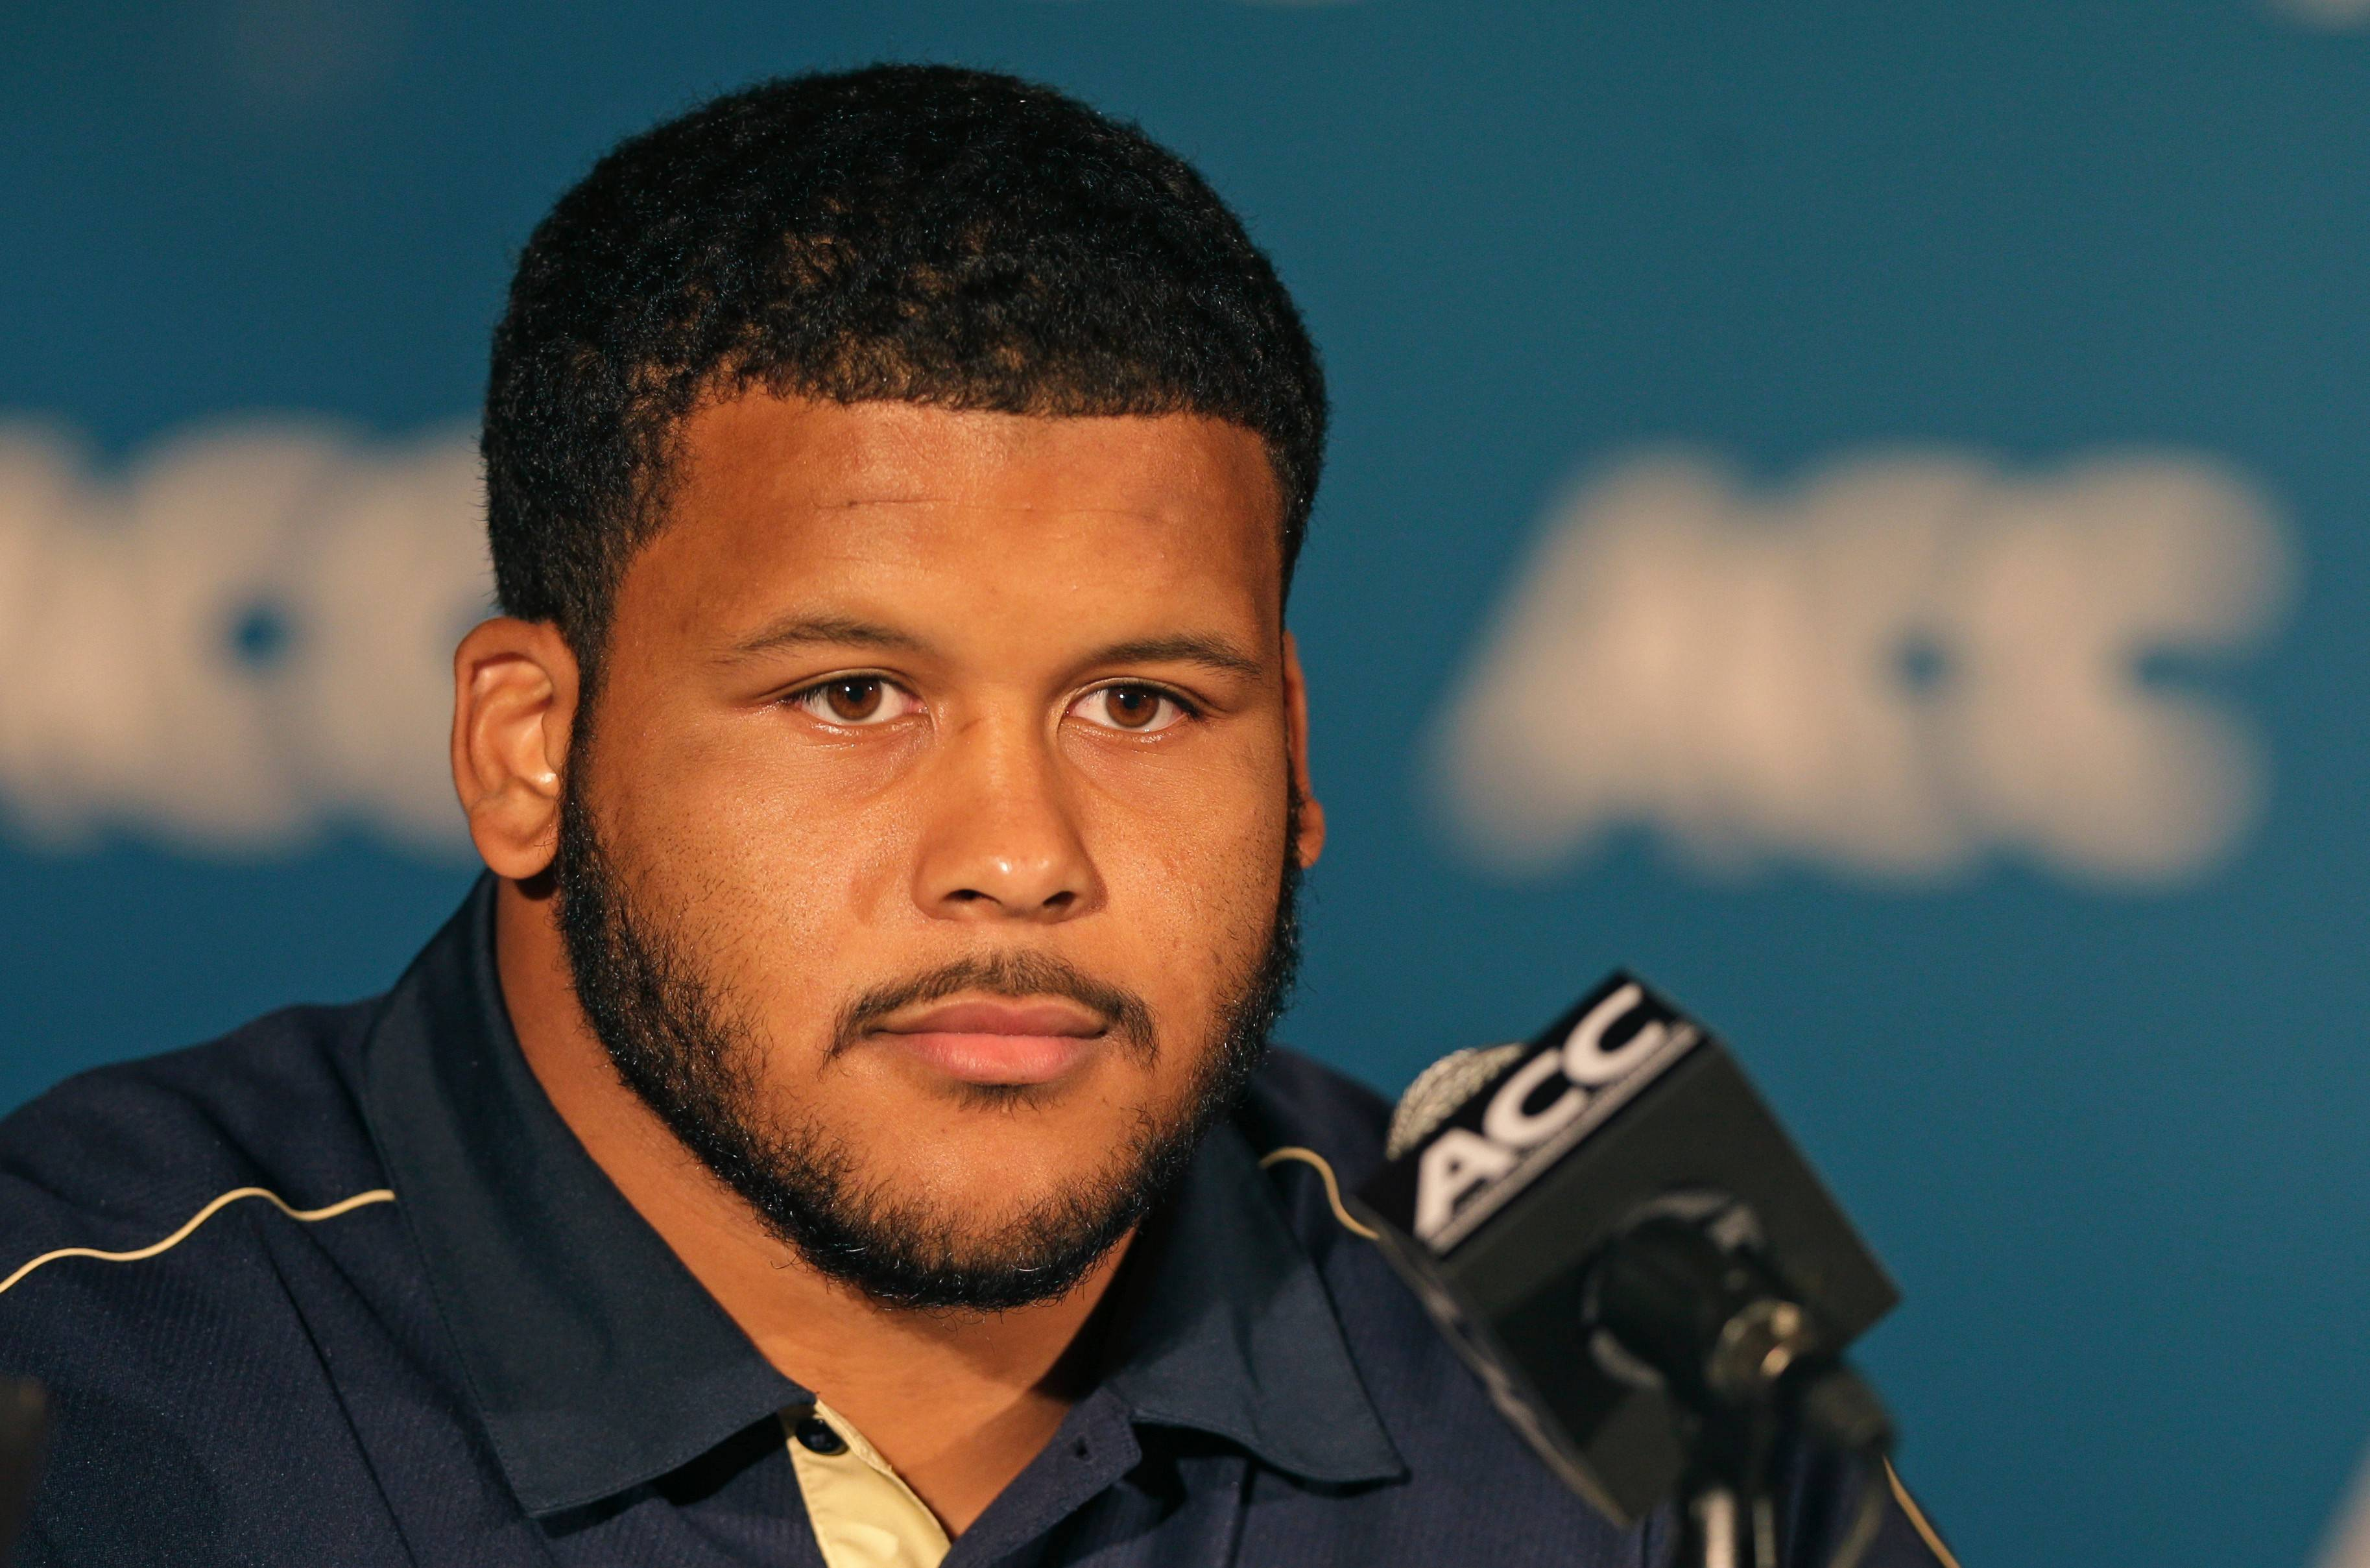 Pittsburgh's Aaron Donald earned the defensive lineman four major college football awards and a spot as a first-team All-American.